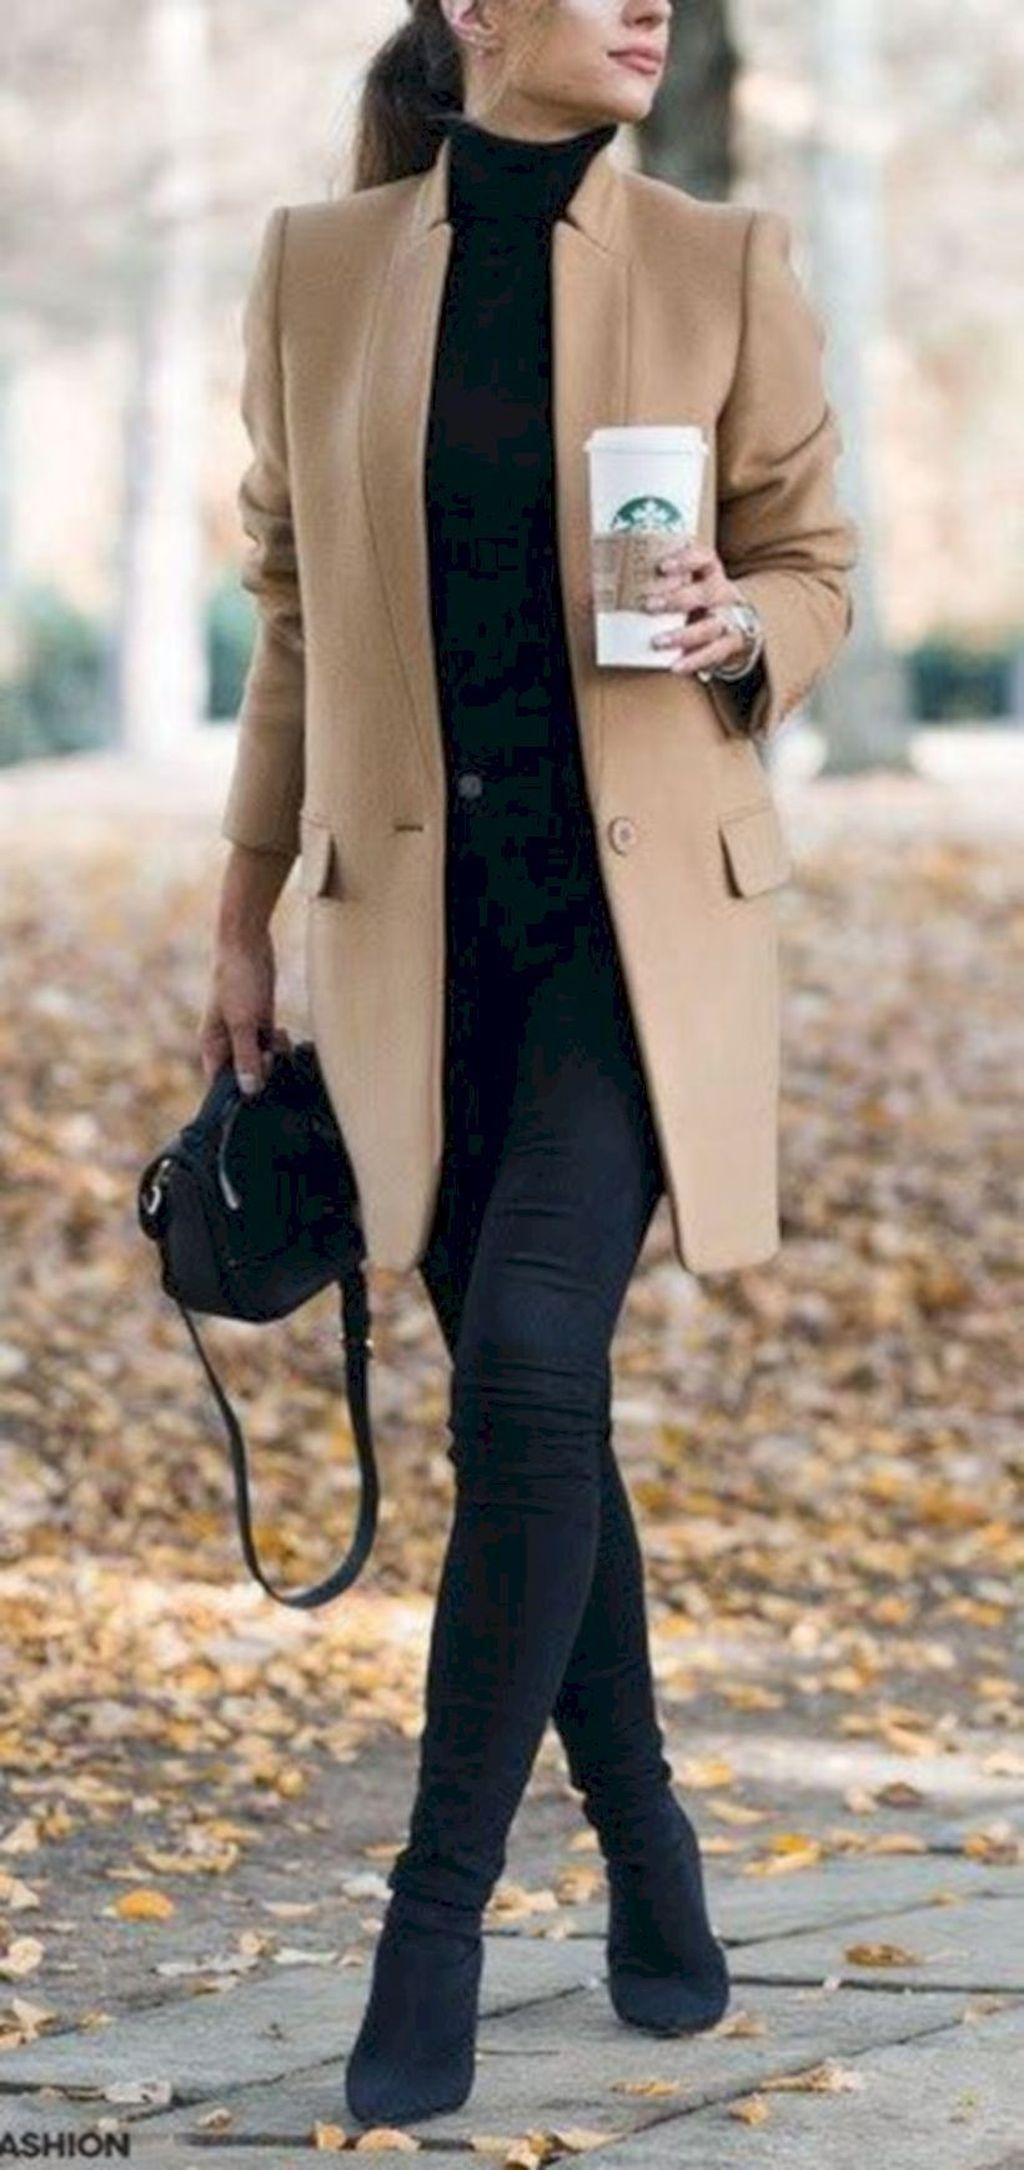 38 Stylish Work Office Outfits Ideas For Women #fallworkoutfits